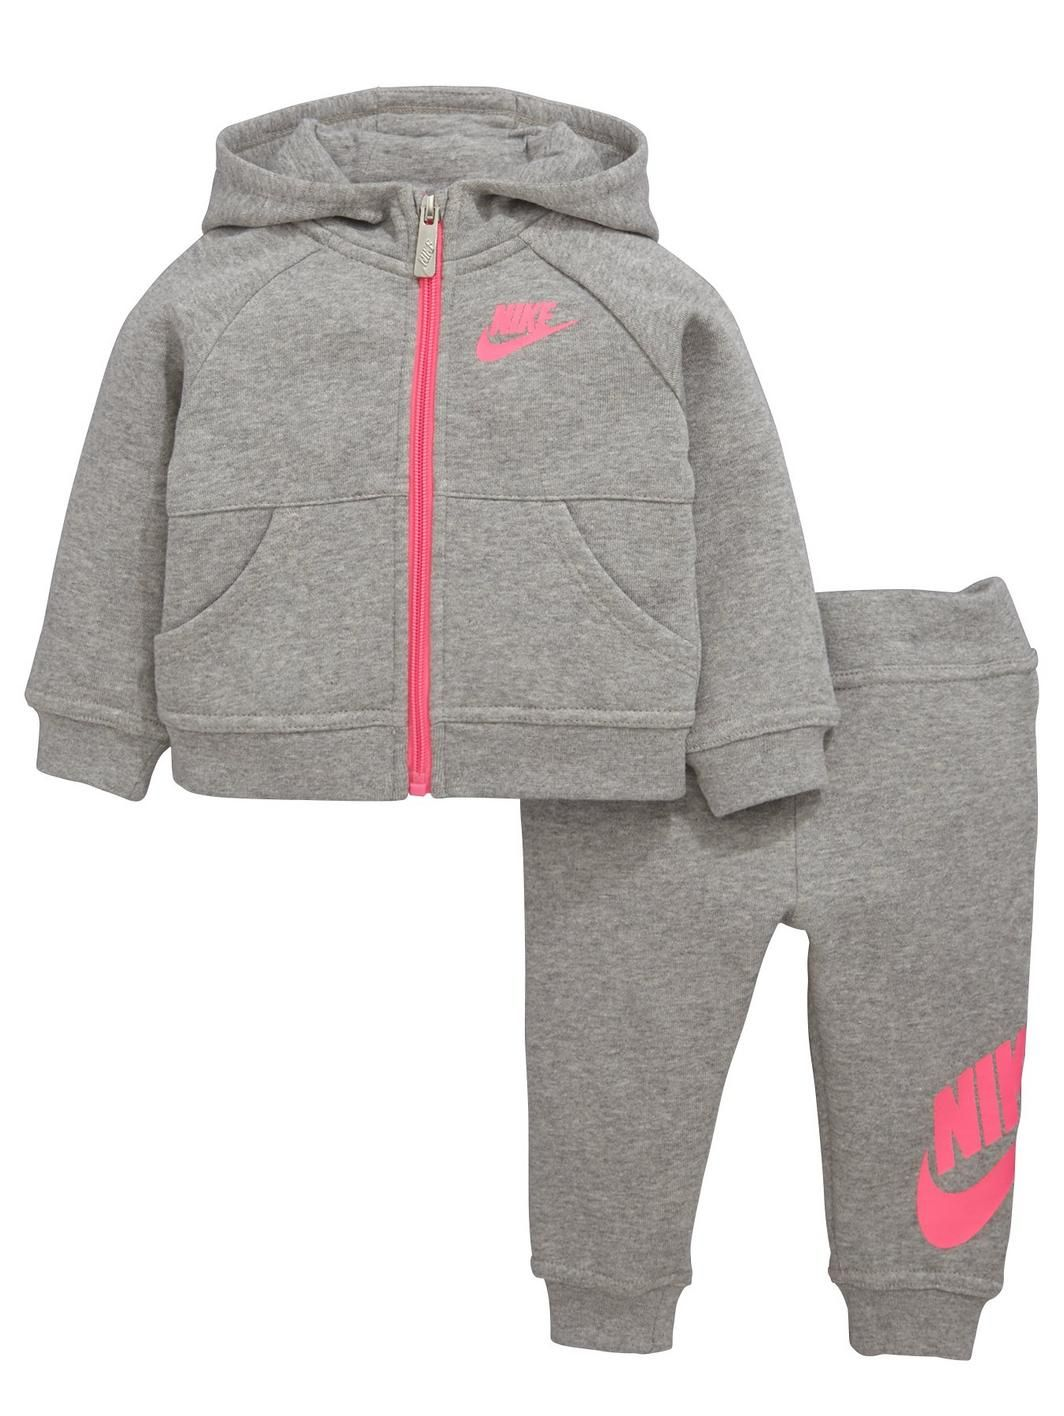 Nike Baby Girl Clothes Pleasing Nike Store $19 On  Pinterest  Babies Girls And Babies Clothes 2018